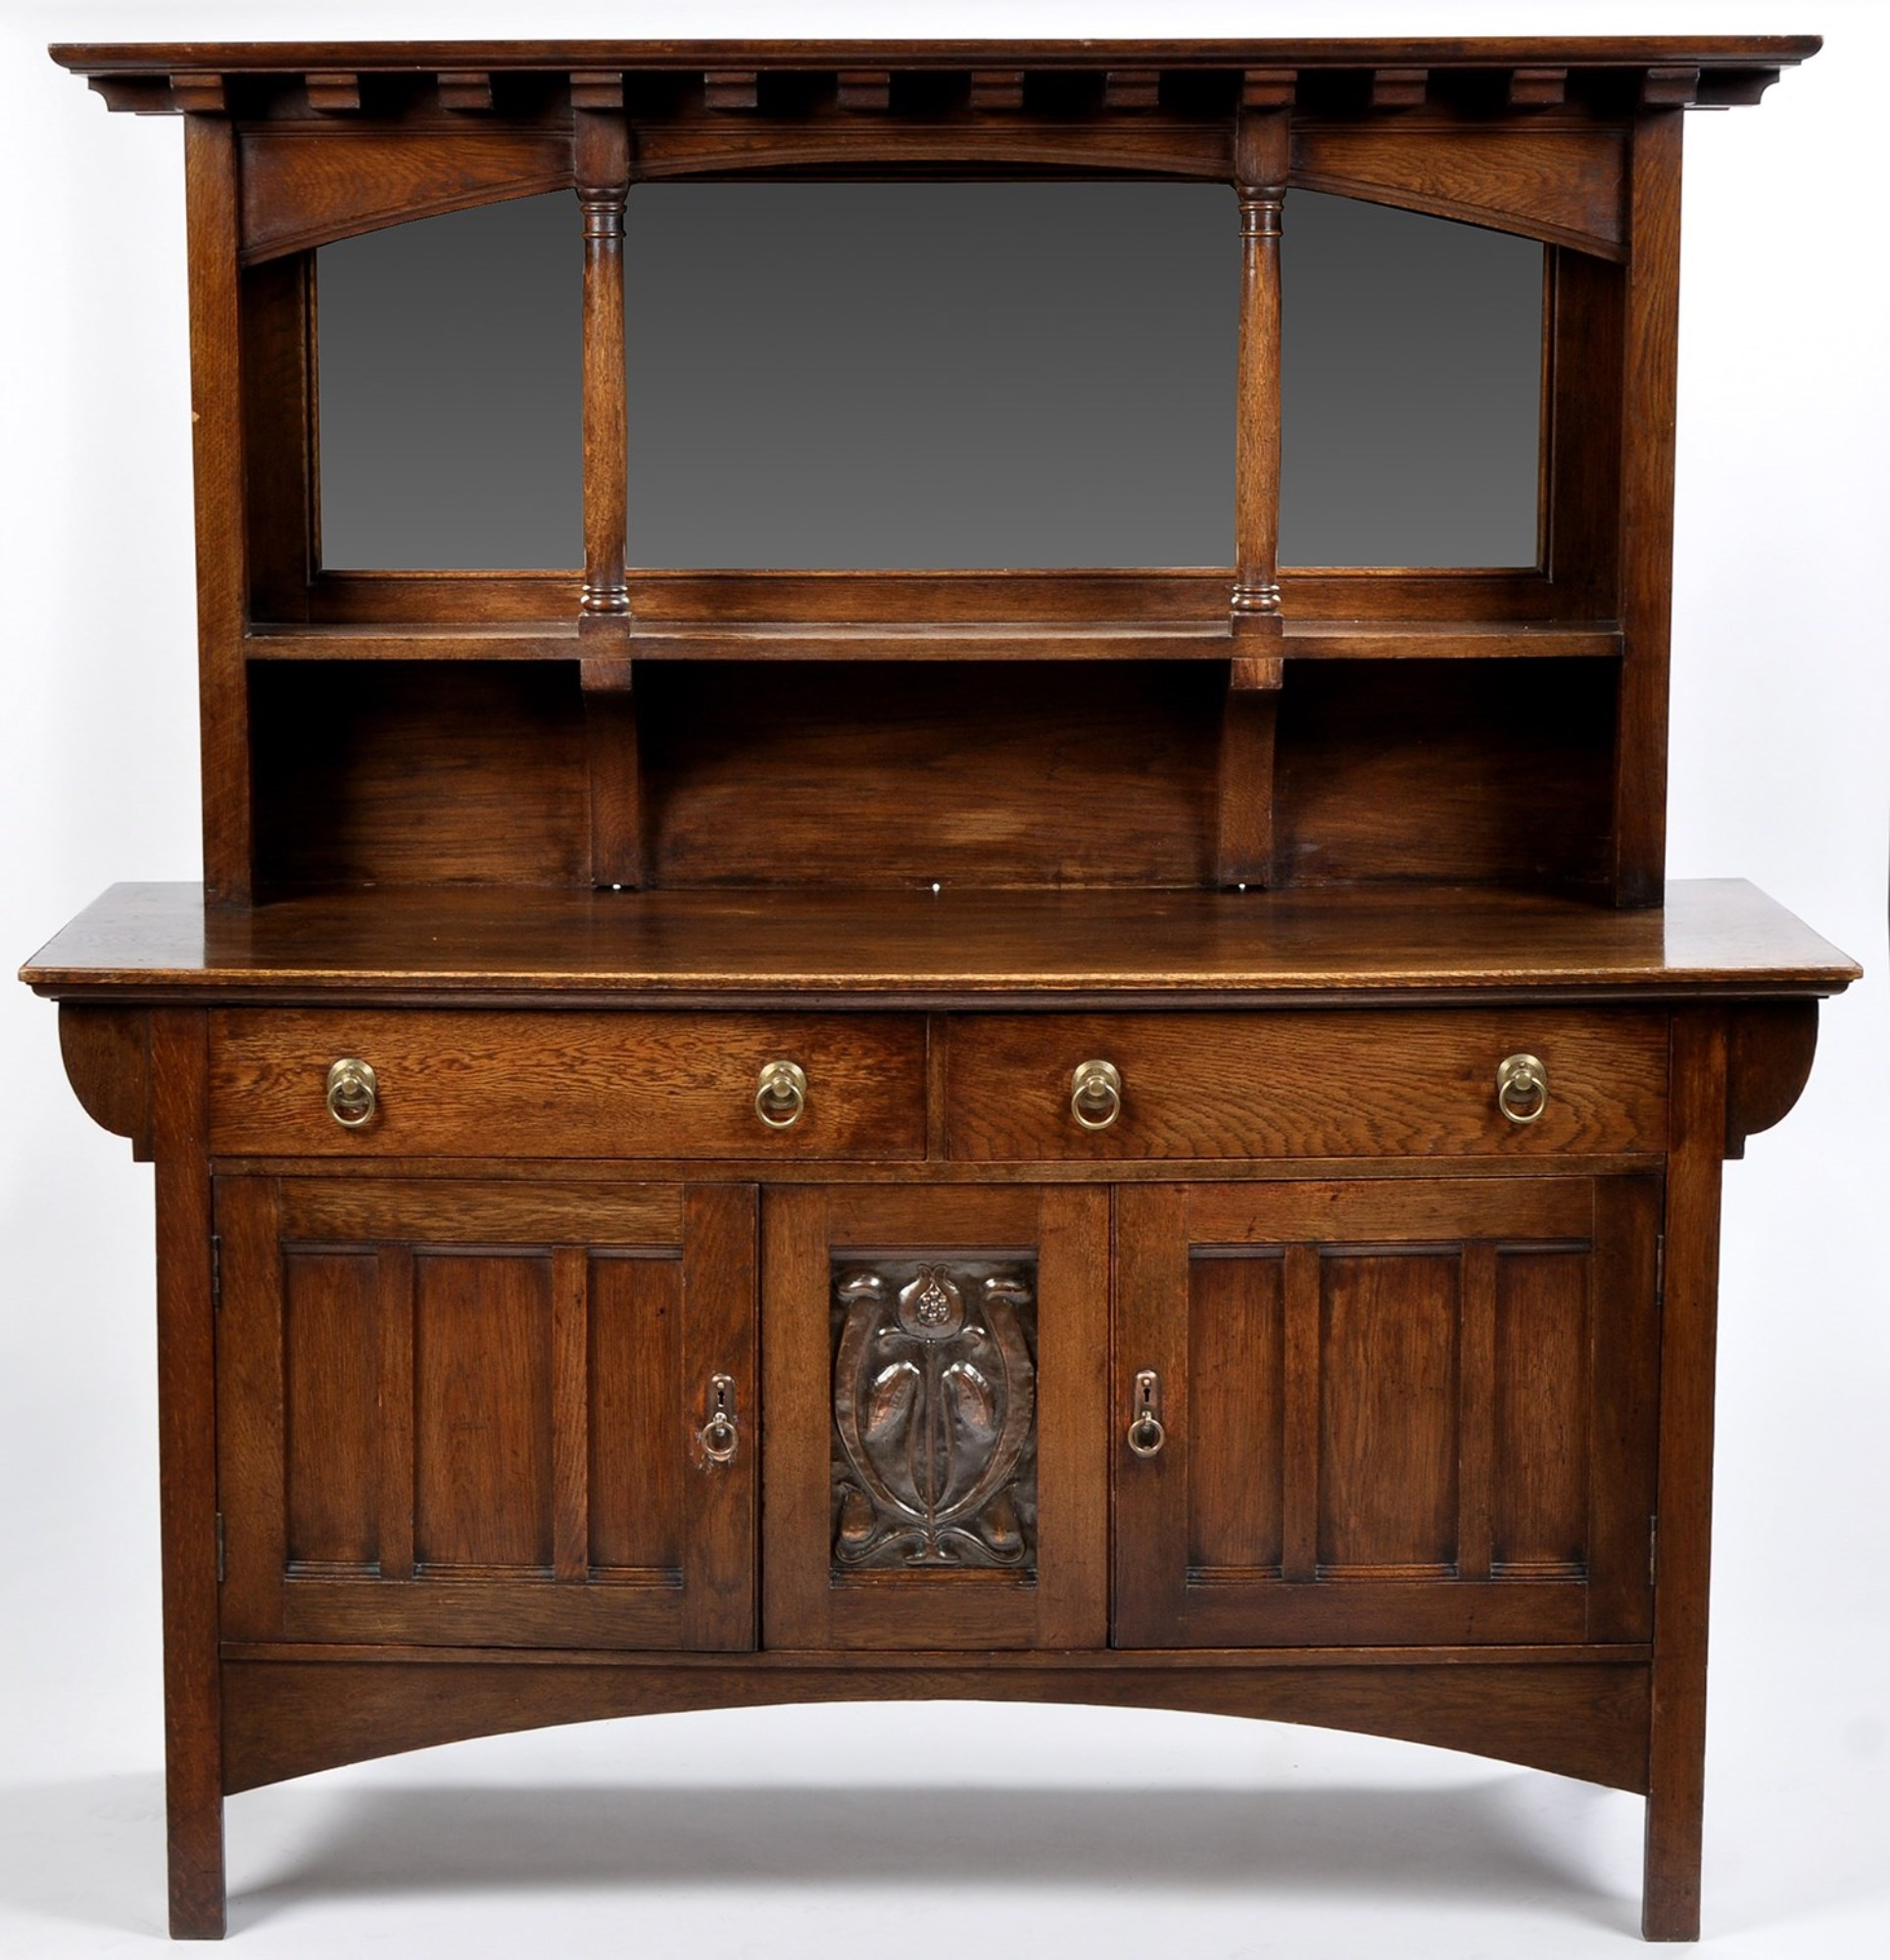 An Arts & Crafts oak sideboard, possibly by Shapland & Petter,